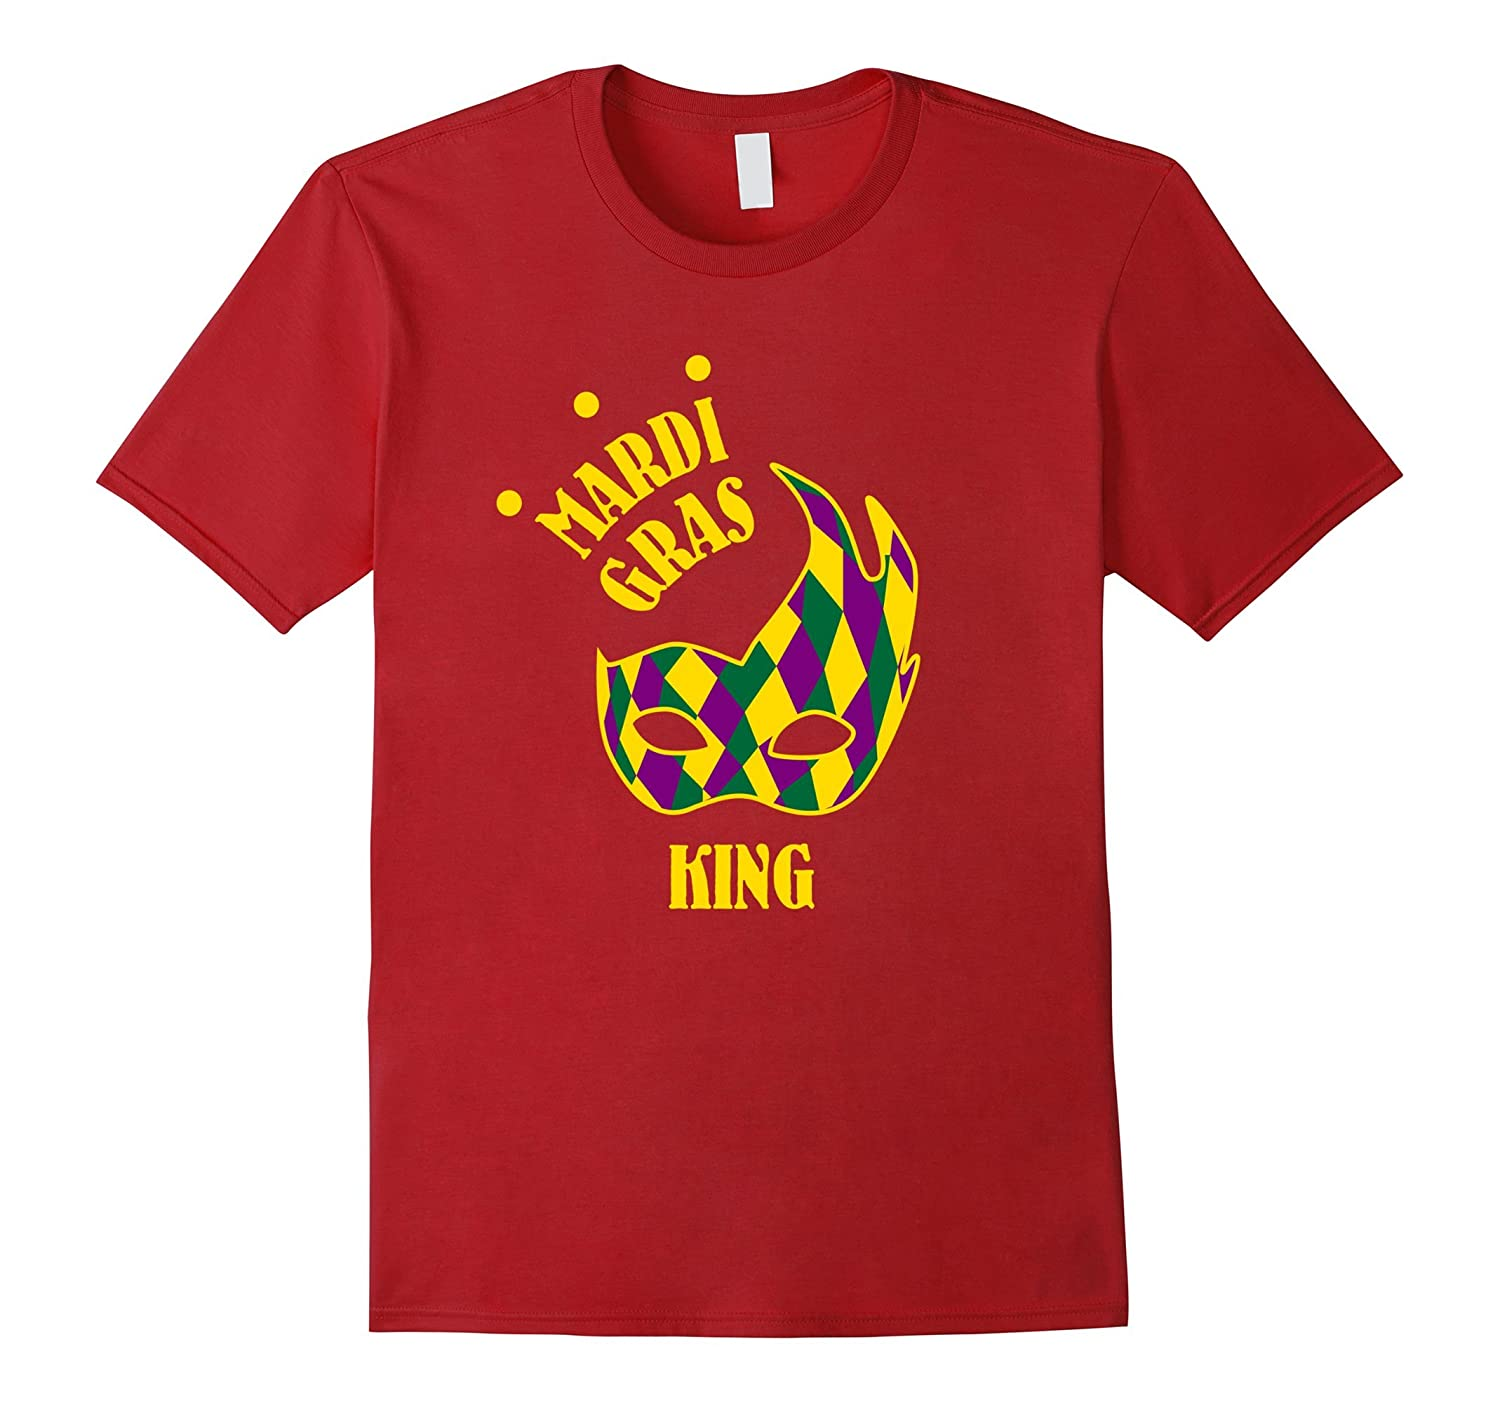 Mardi Gras King Shirt Funny Cute Mask Celebration Party Gift-TJ